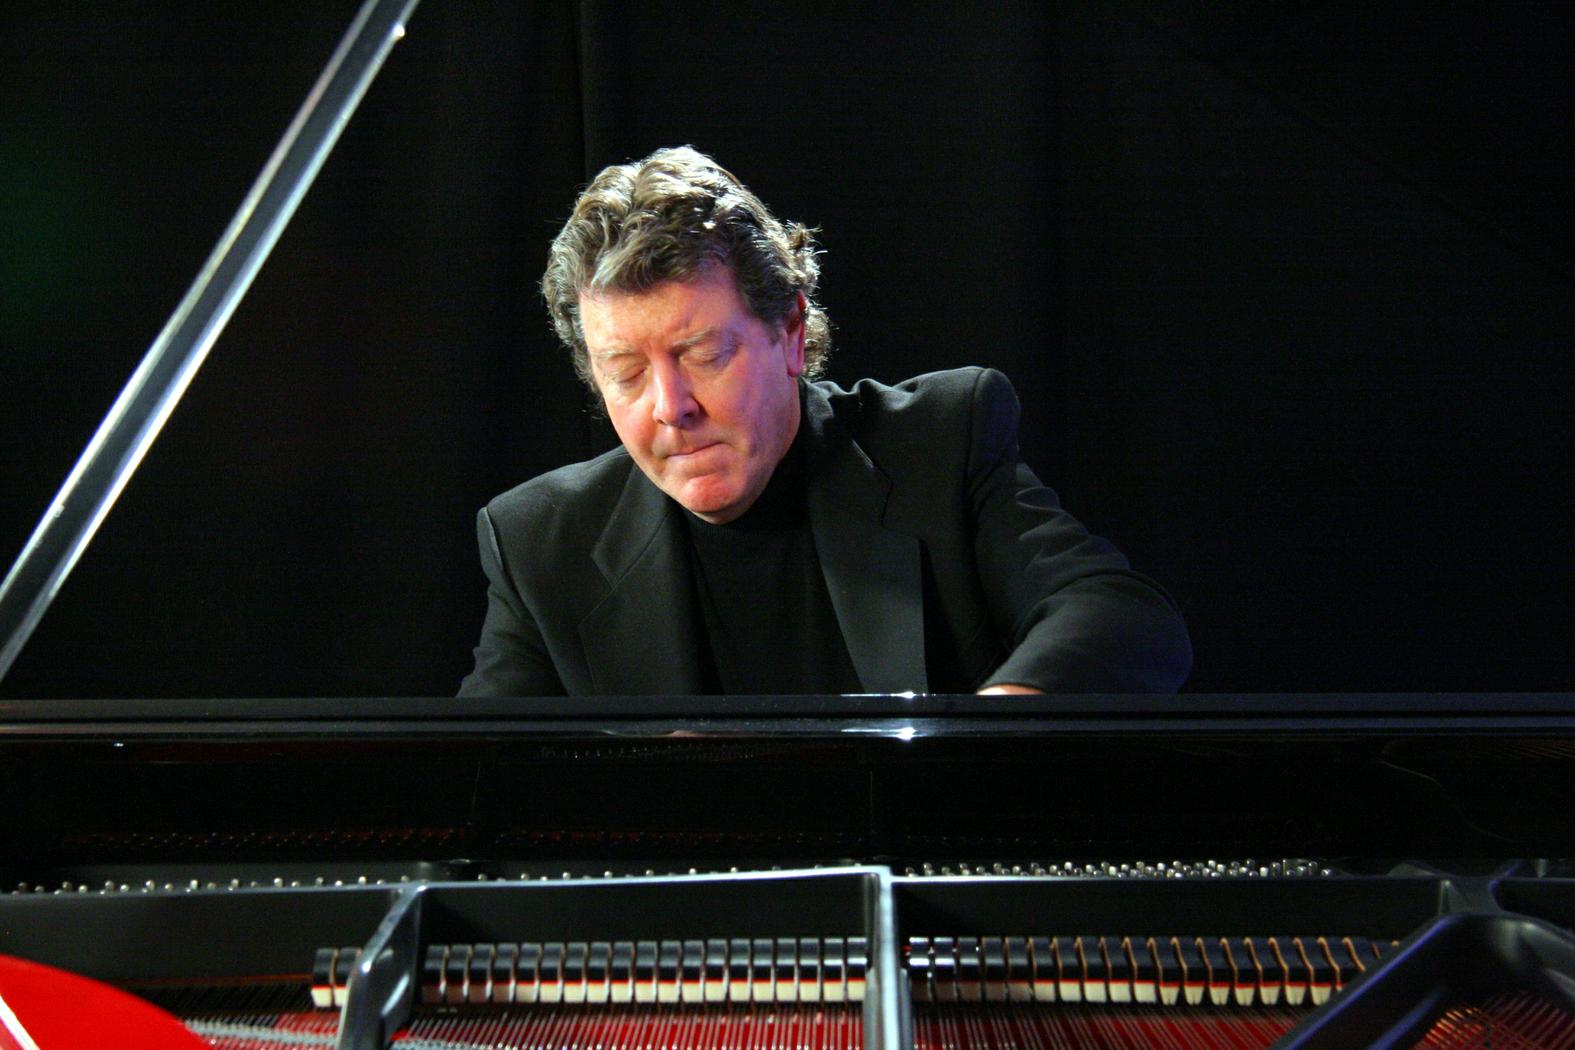 Serge Mazerand an Acclaimed Pianist in Concert at the Unity of Vancouver Centre